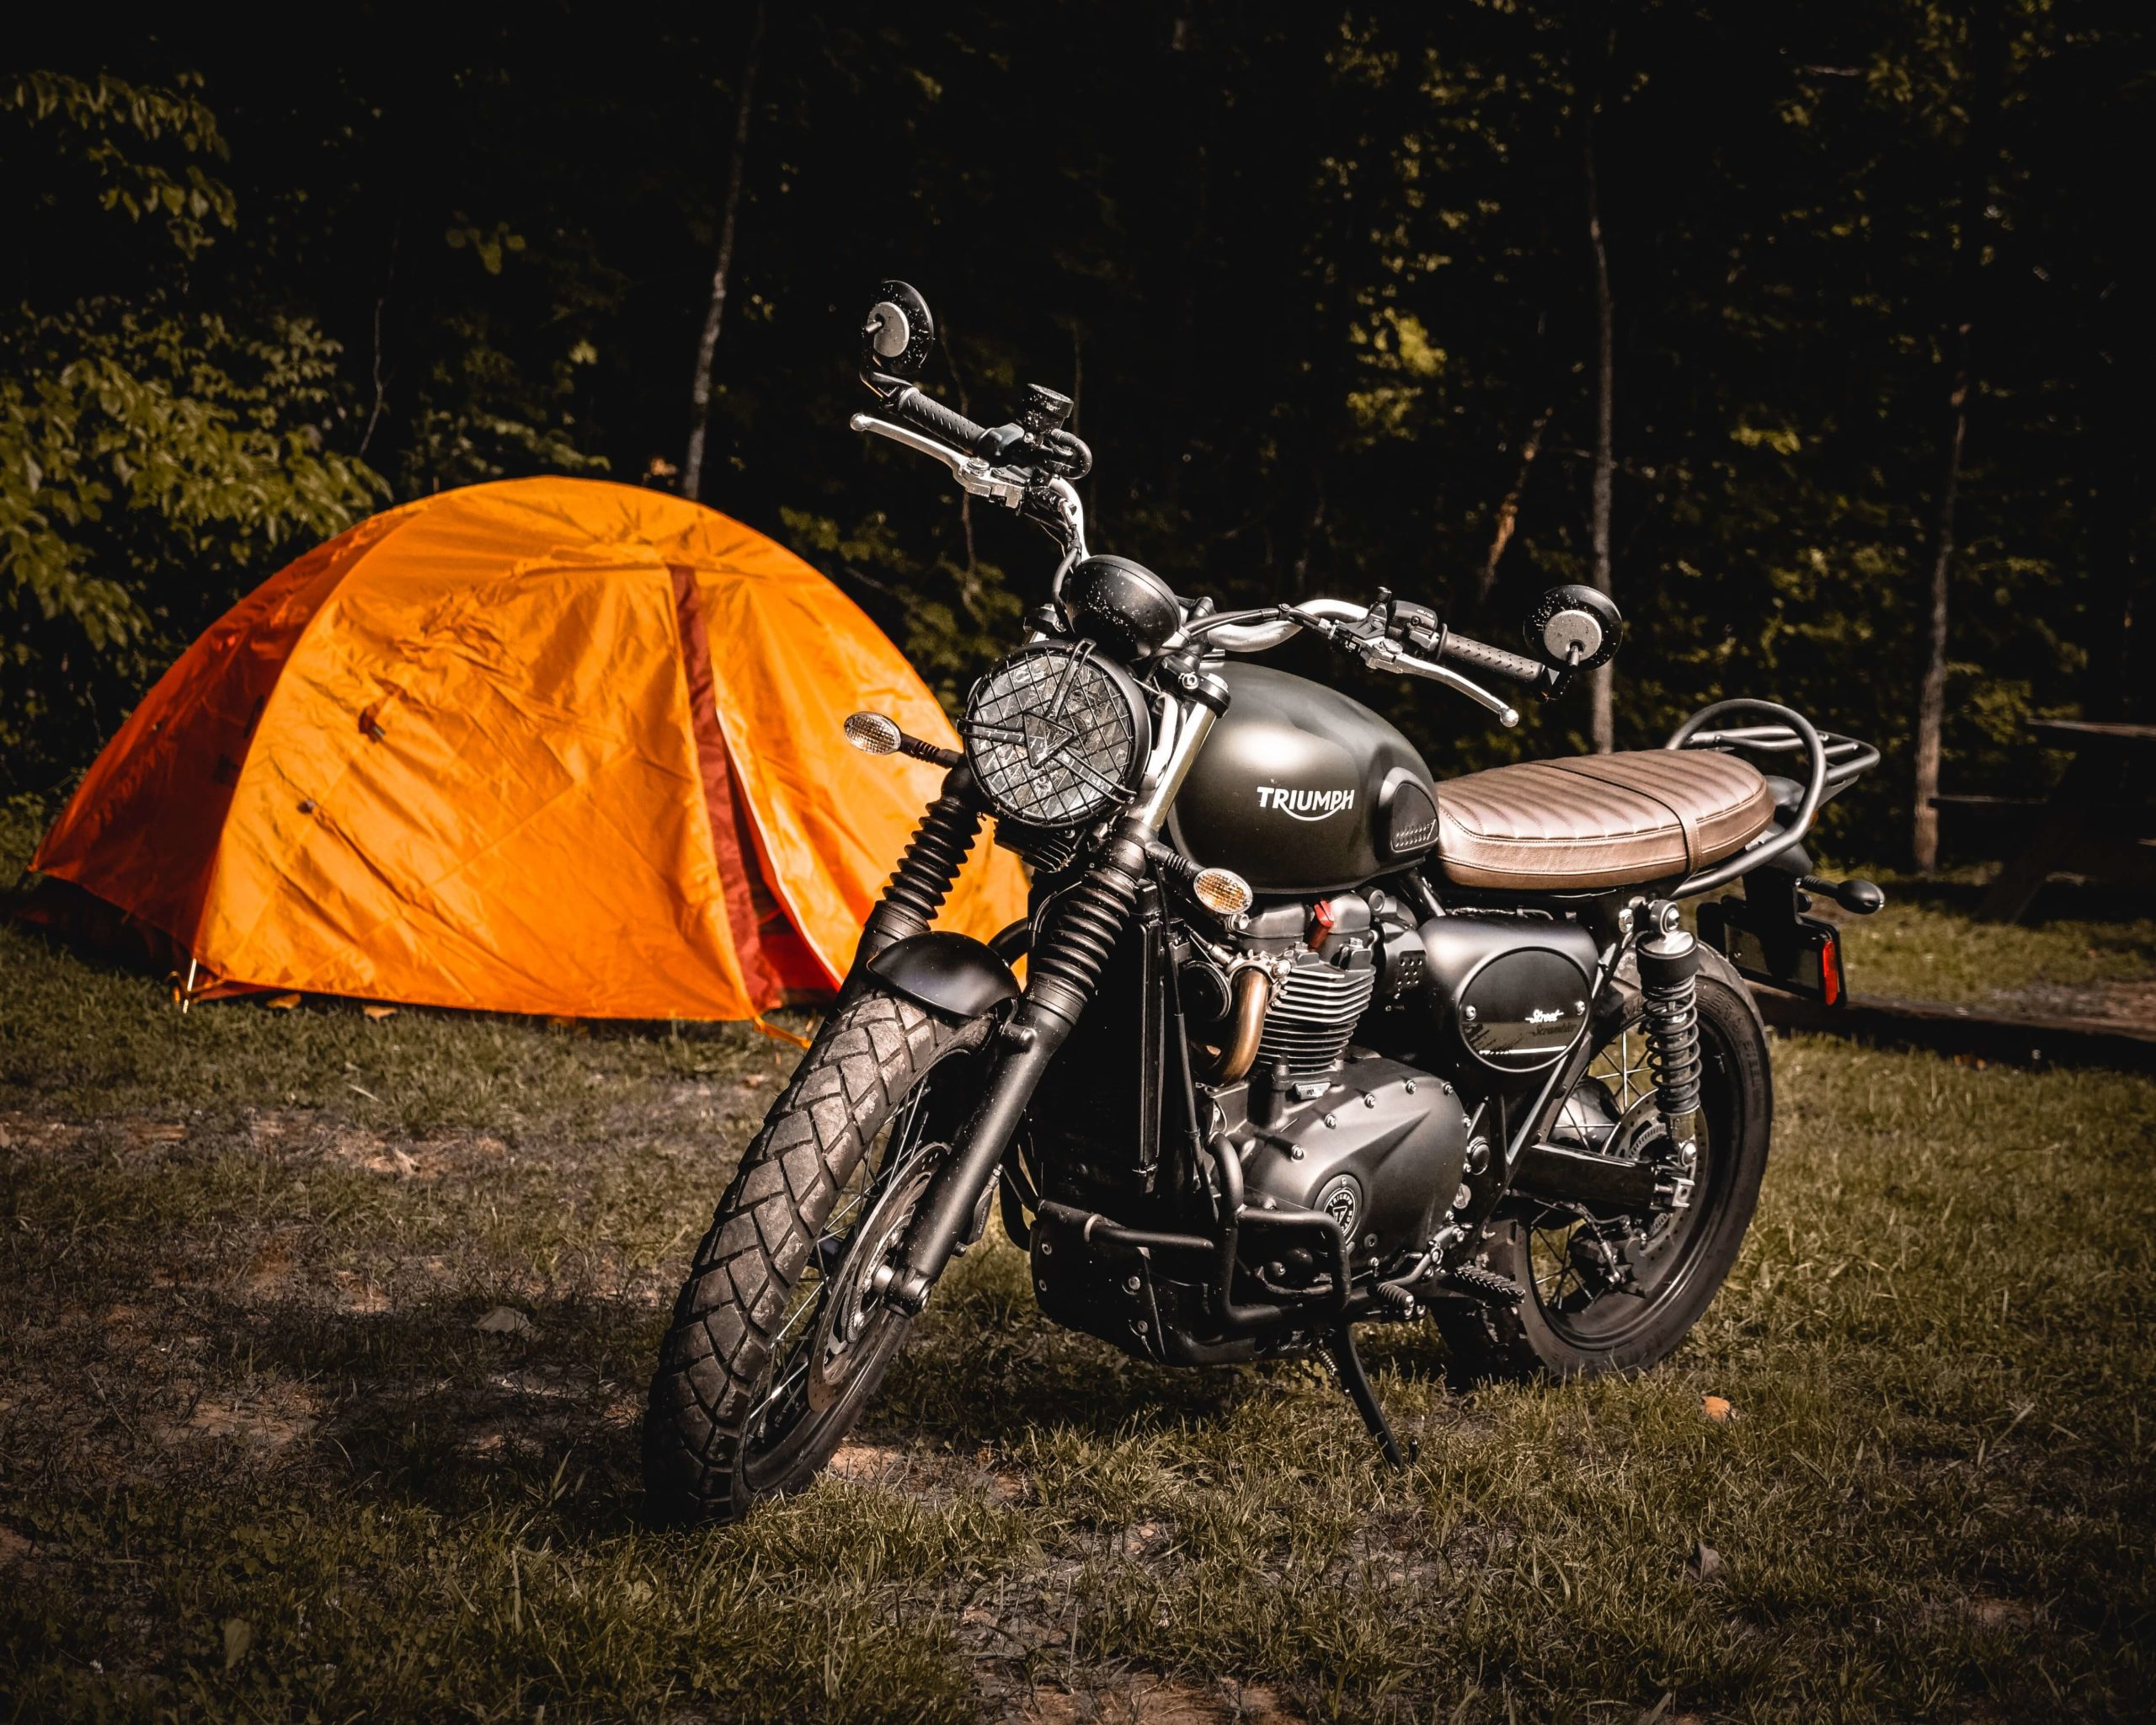 Motorcycle Camper Trailers: For Camping or Cargo